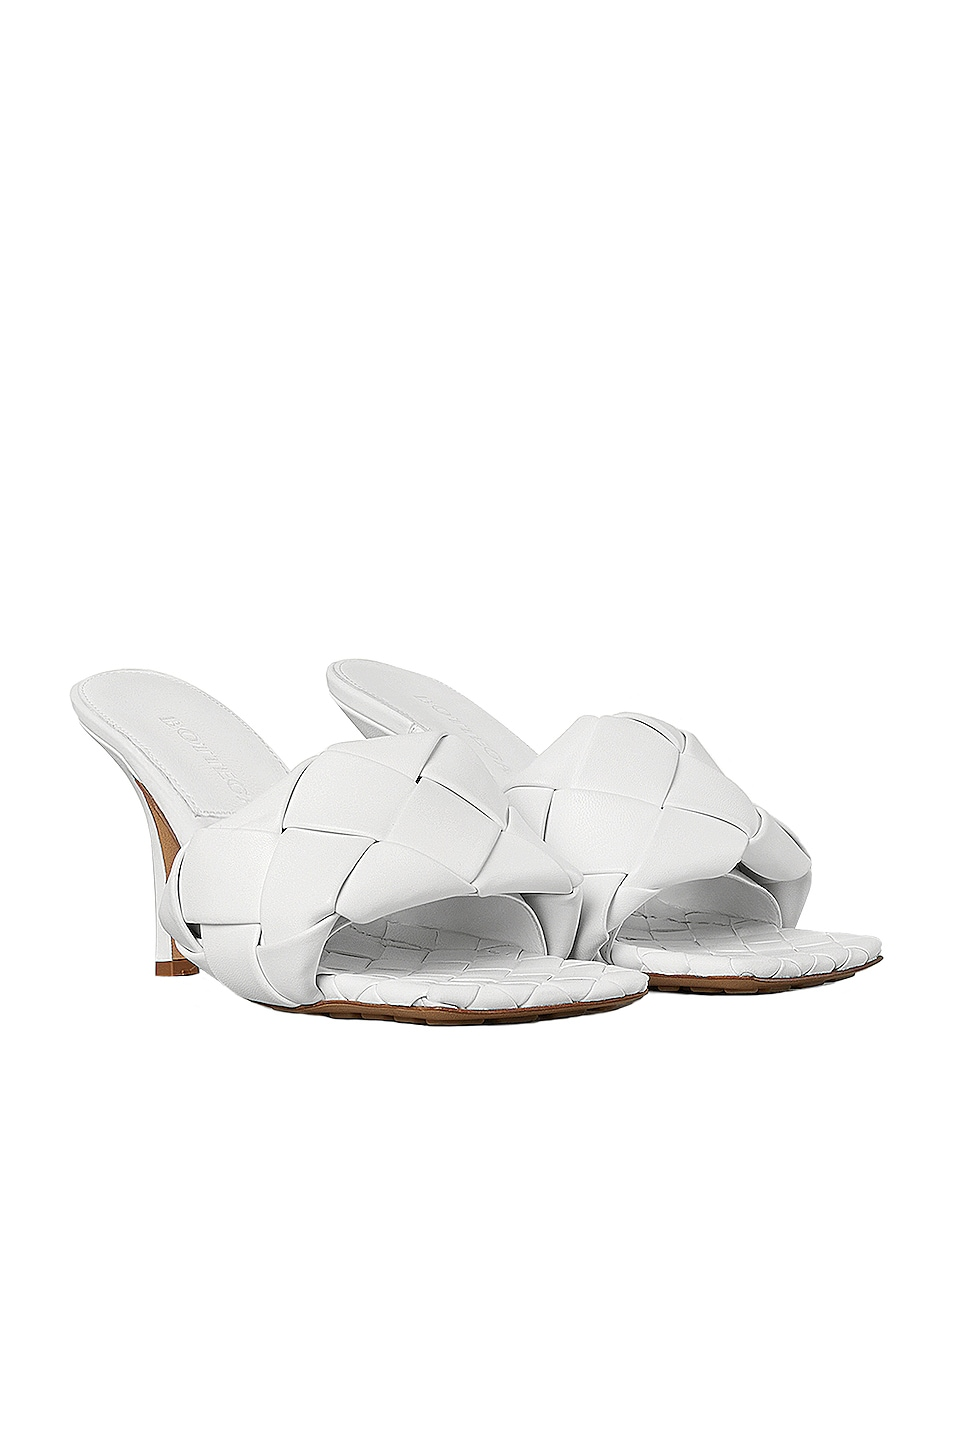 Image 2 of Bottega Veneta Leather Woven Sandals in Optic White